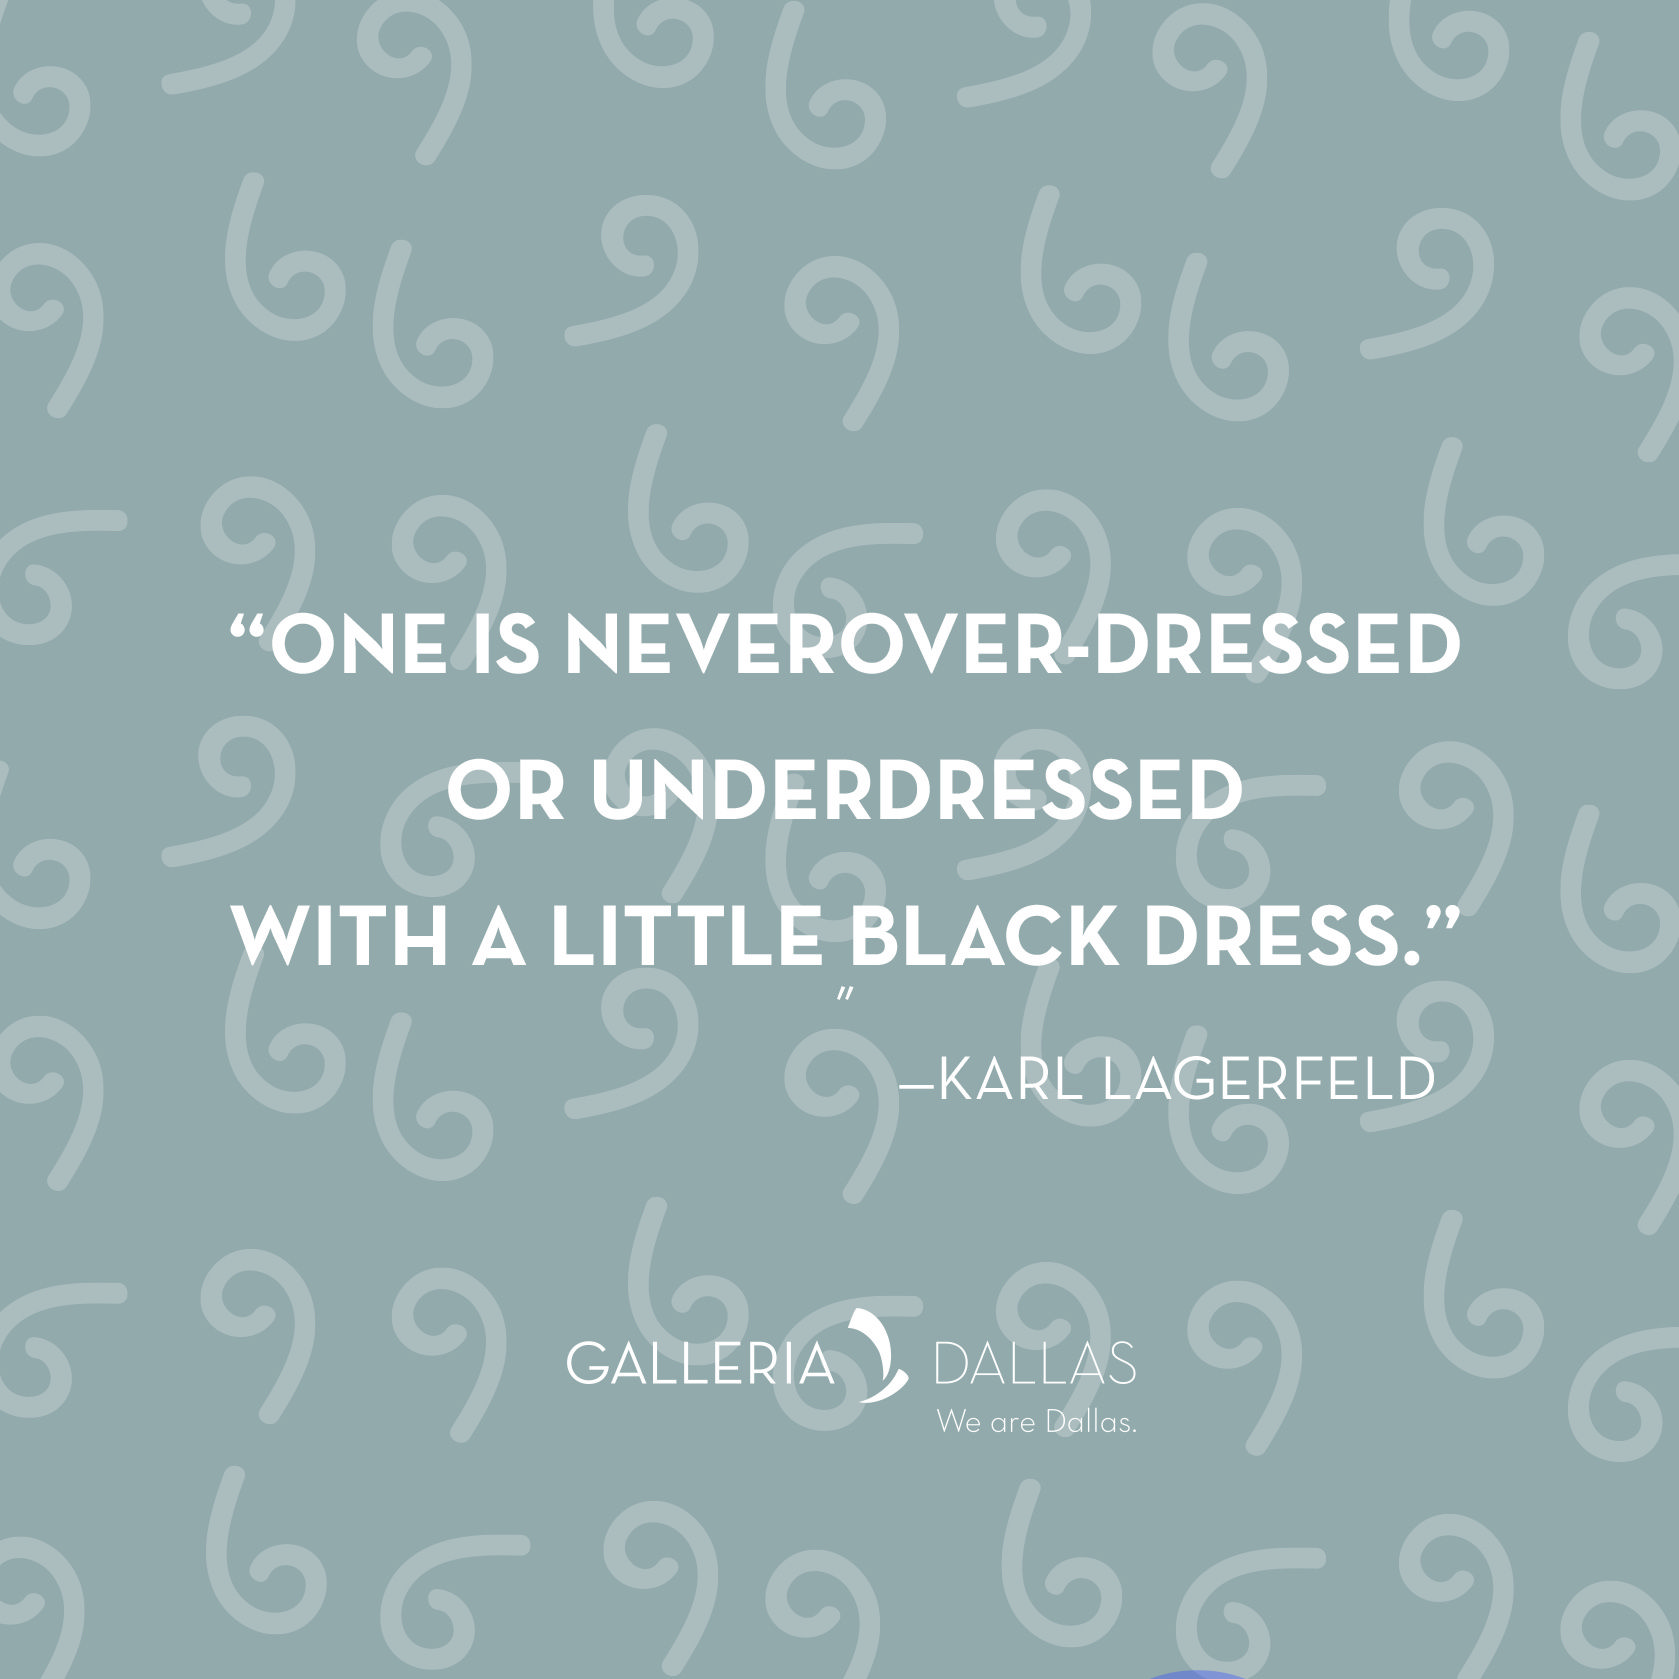 No Wardrobe Is Complete Without A Little Black Dress Karl Lagerfeld Chanel Quotes Quotes We Love Chanel Quotes Karl Lagerfeld Chanel Lifestyle Quotes [ 1679 x 1679 Pixel ]